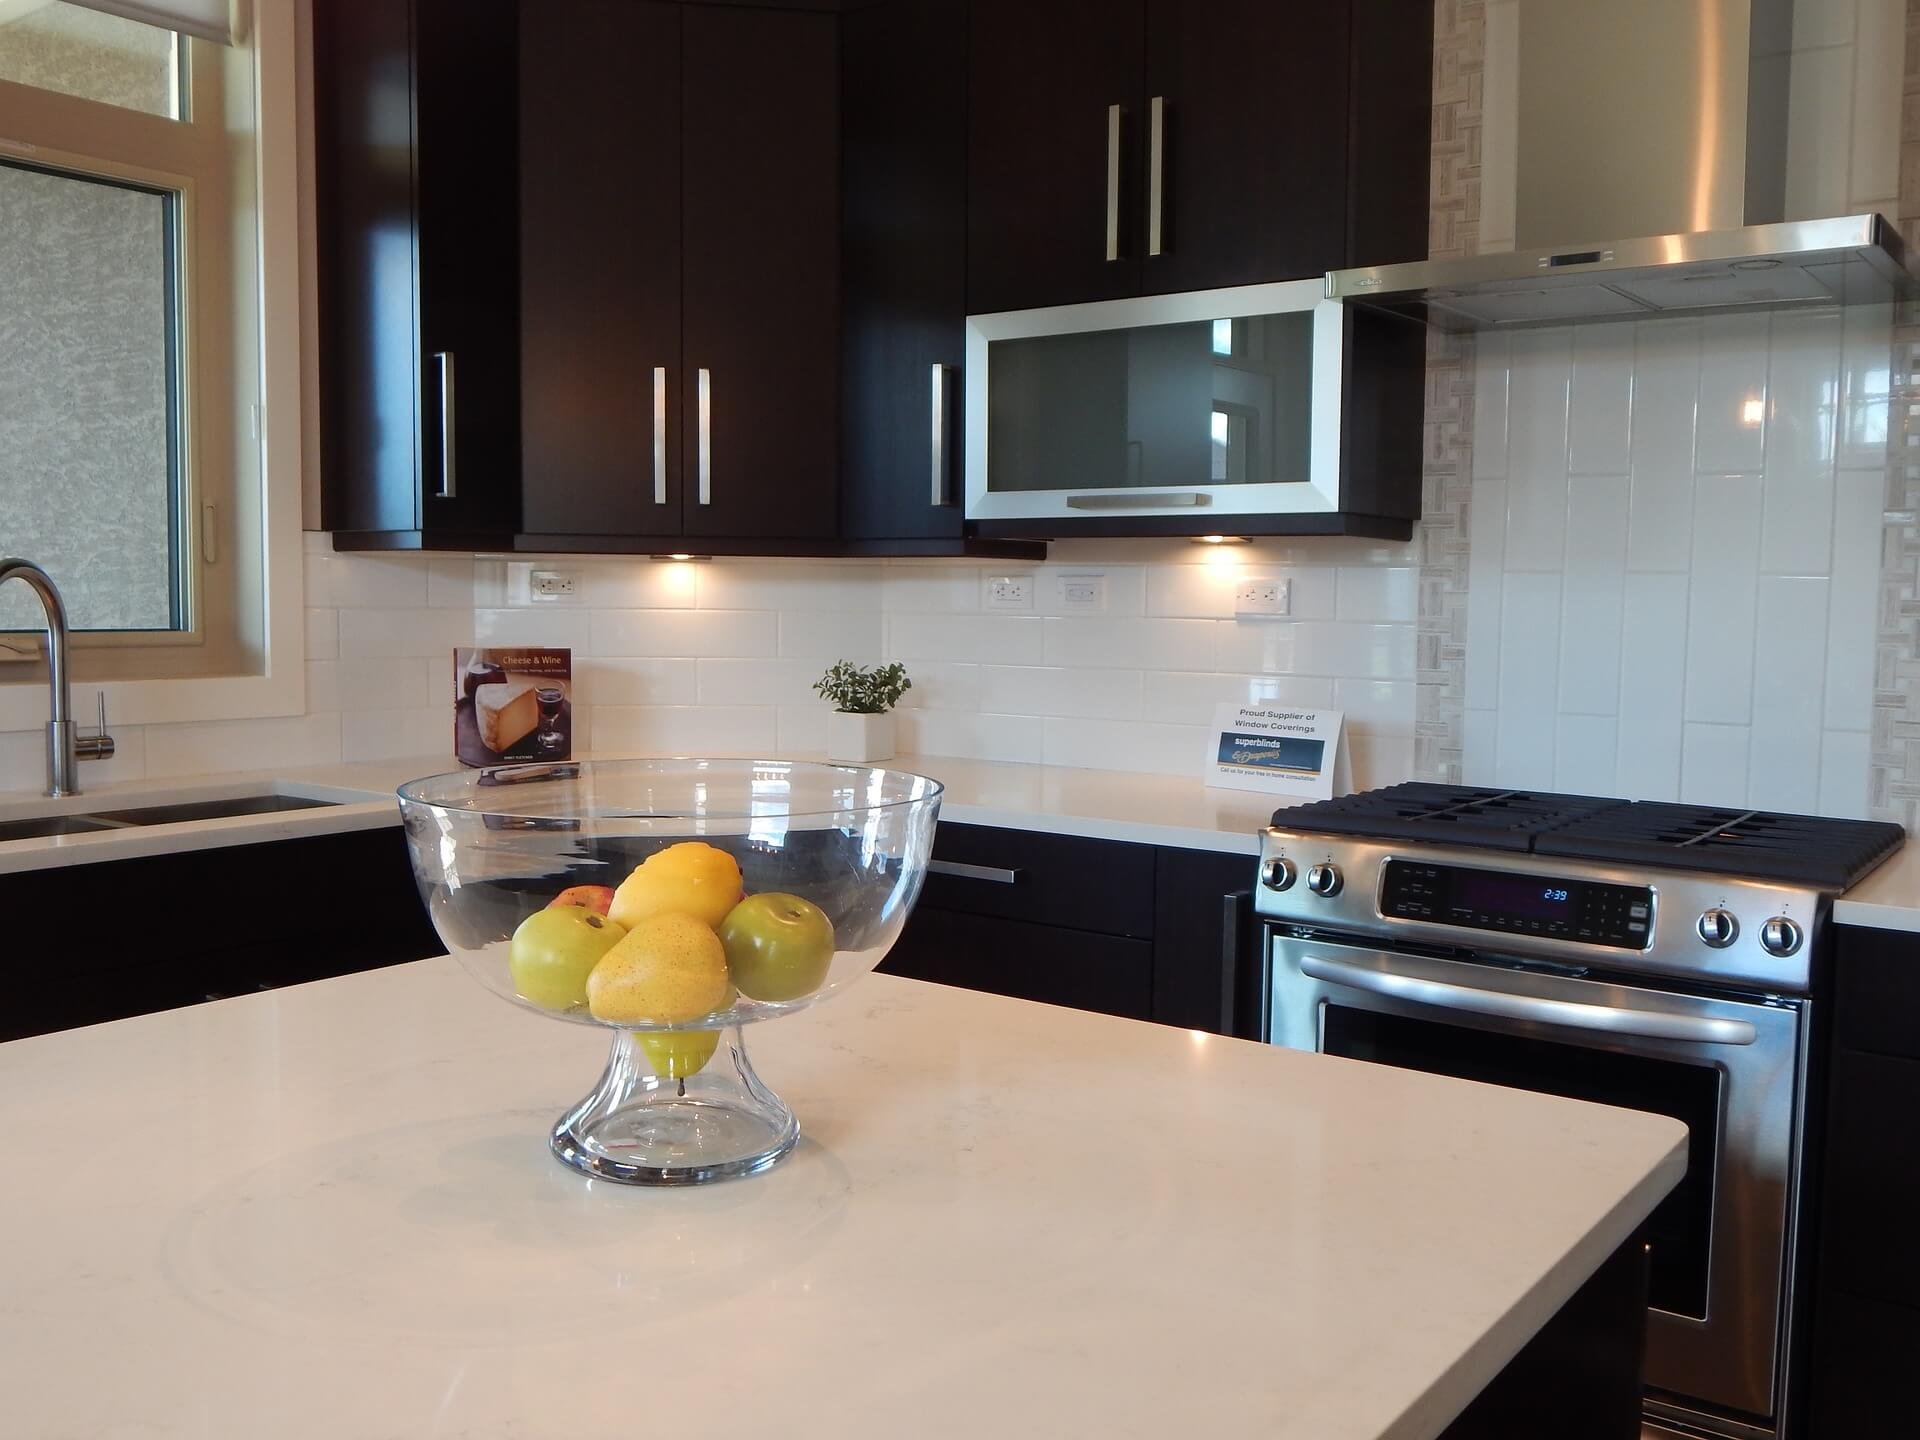 Small kitchen remodeling-SoFlo Kitchen Remodeling & Custom Cabinet Installation - backsplashes, flooring, countertops